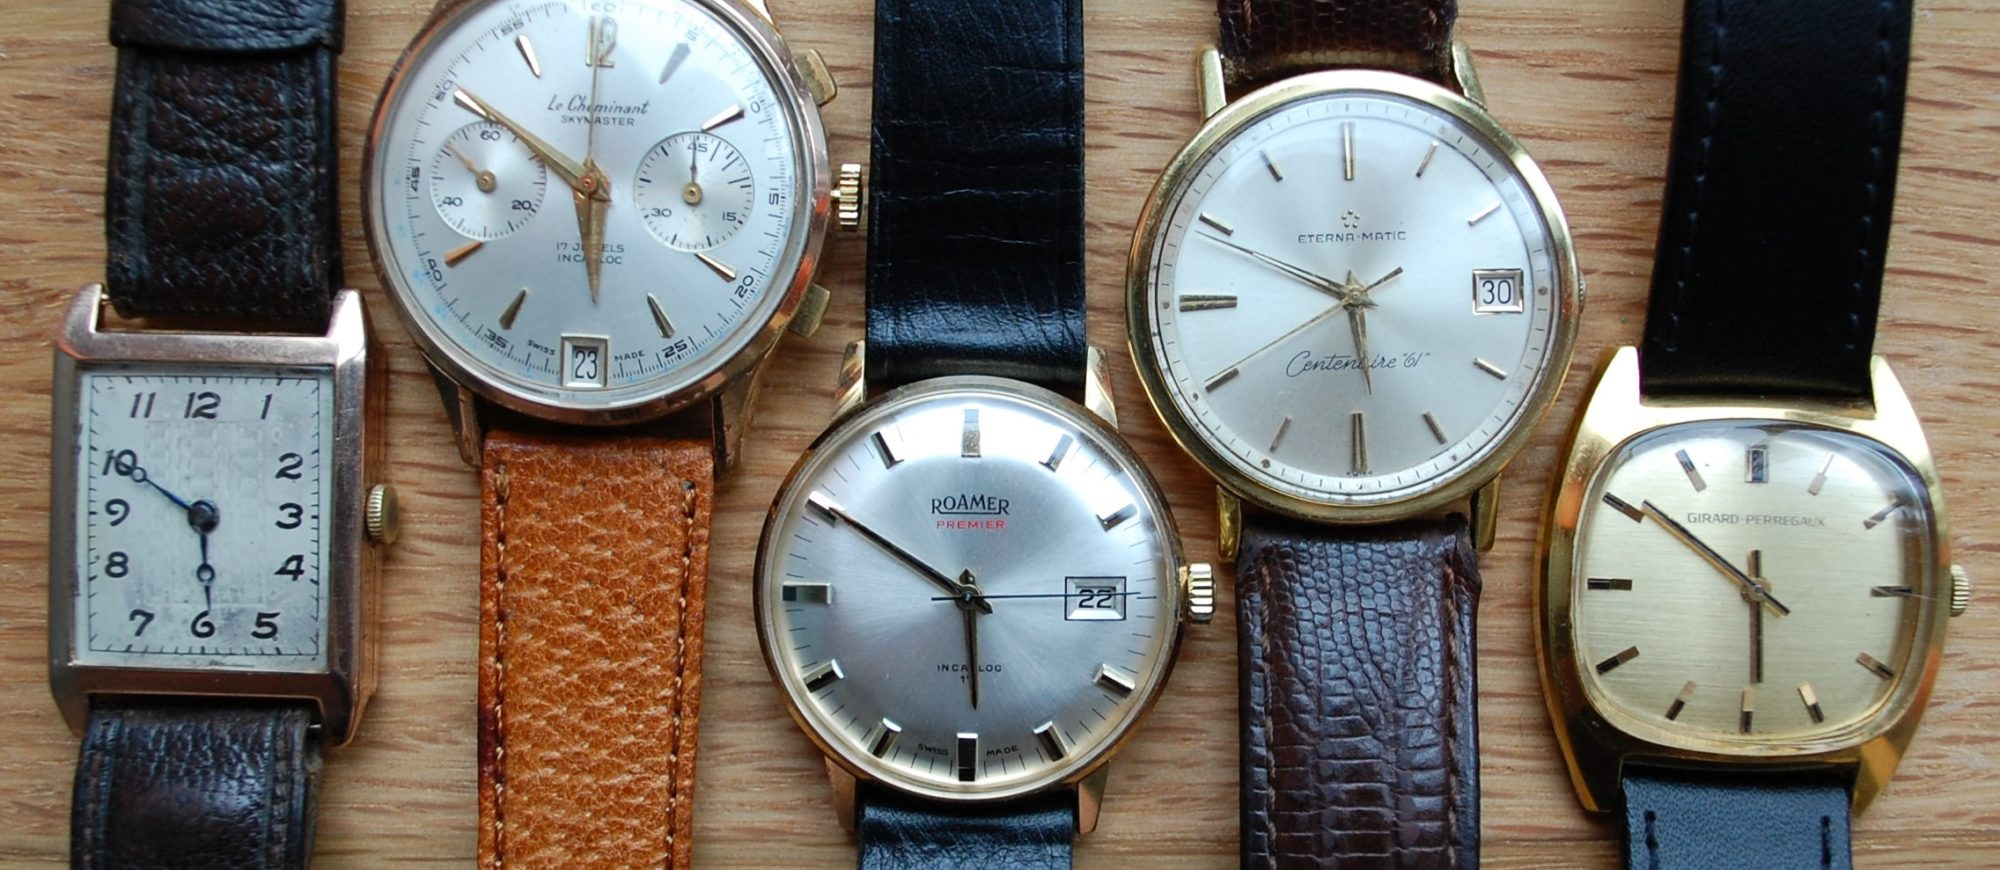 Birth Year Watches